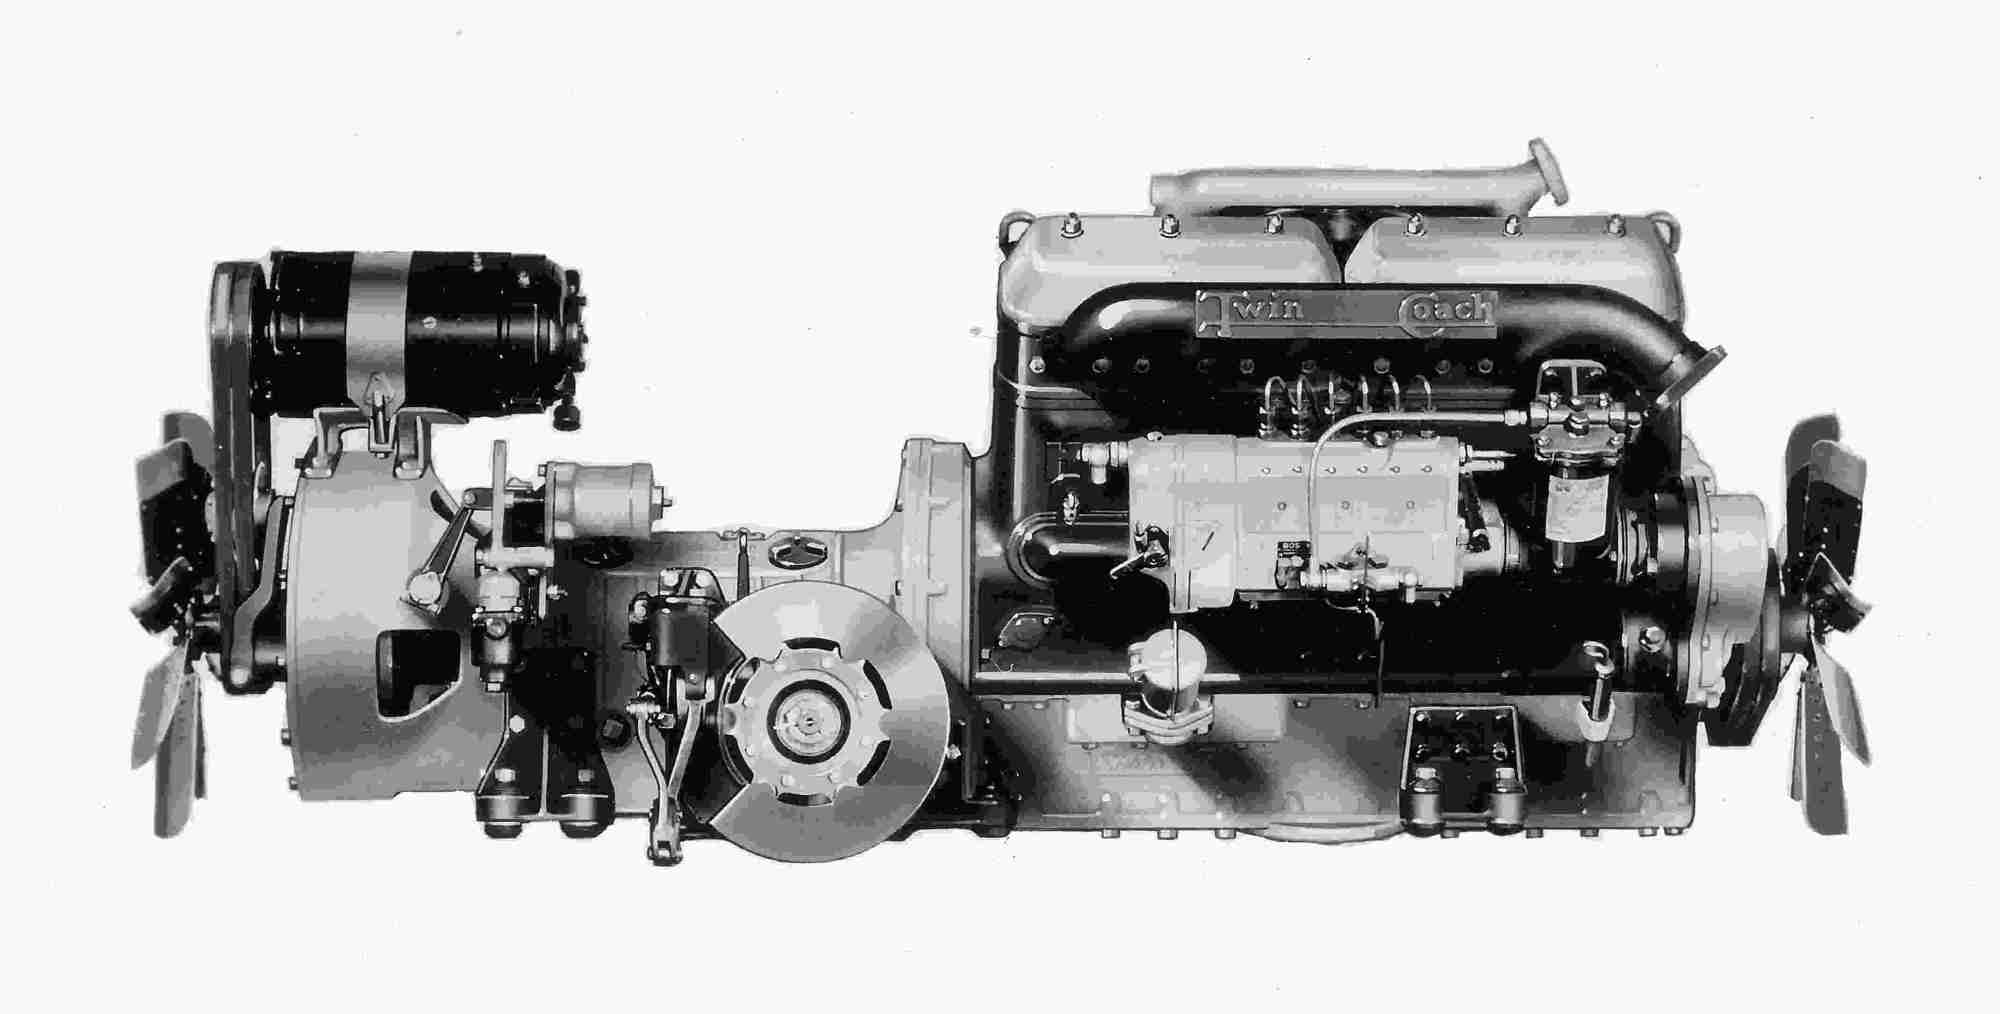 hight resolution of  1935 twin coach diesel engine by hercules